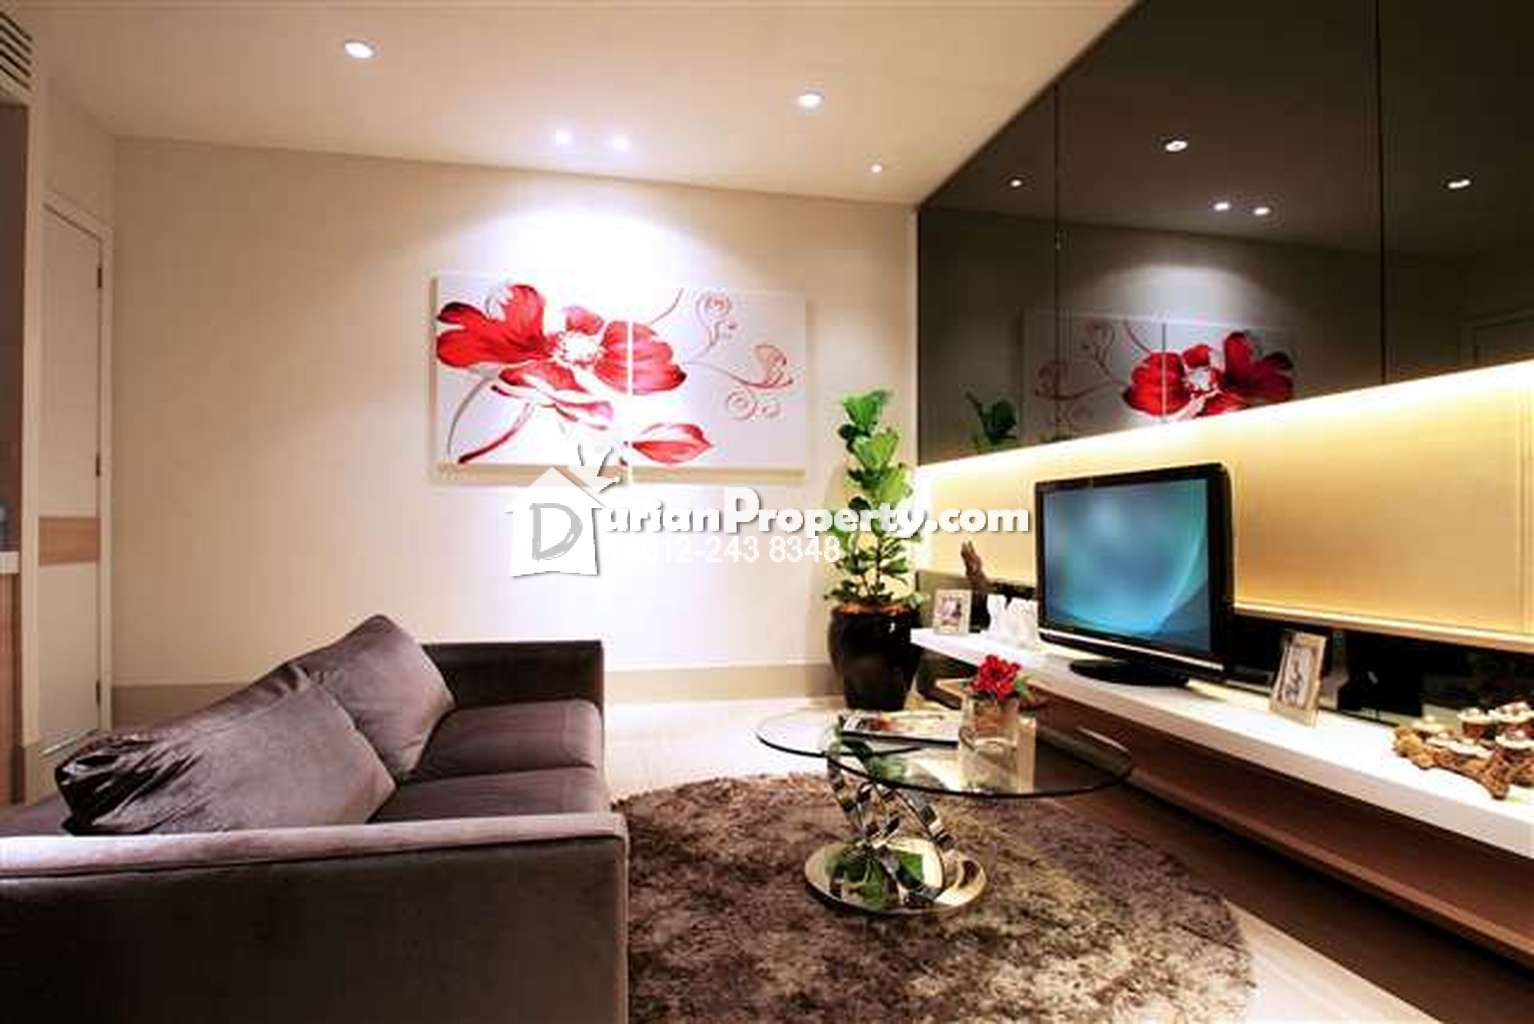 Condo For Sale at Eve Suite Ara Damansara for RM550000 by  : 16544665215892 from www.durianproperty.com.my size 1534 x 1024 jpeg 100kB